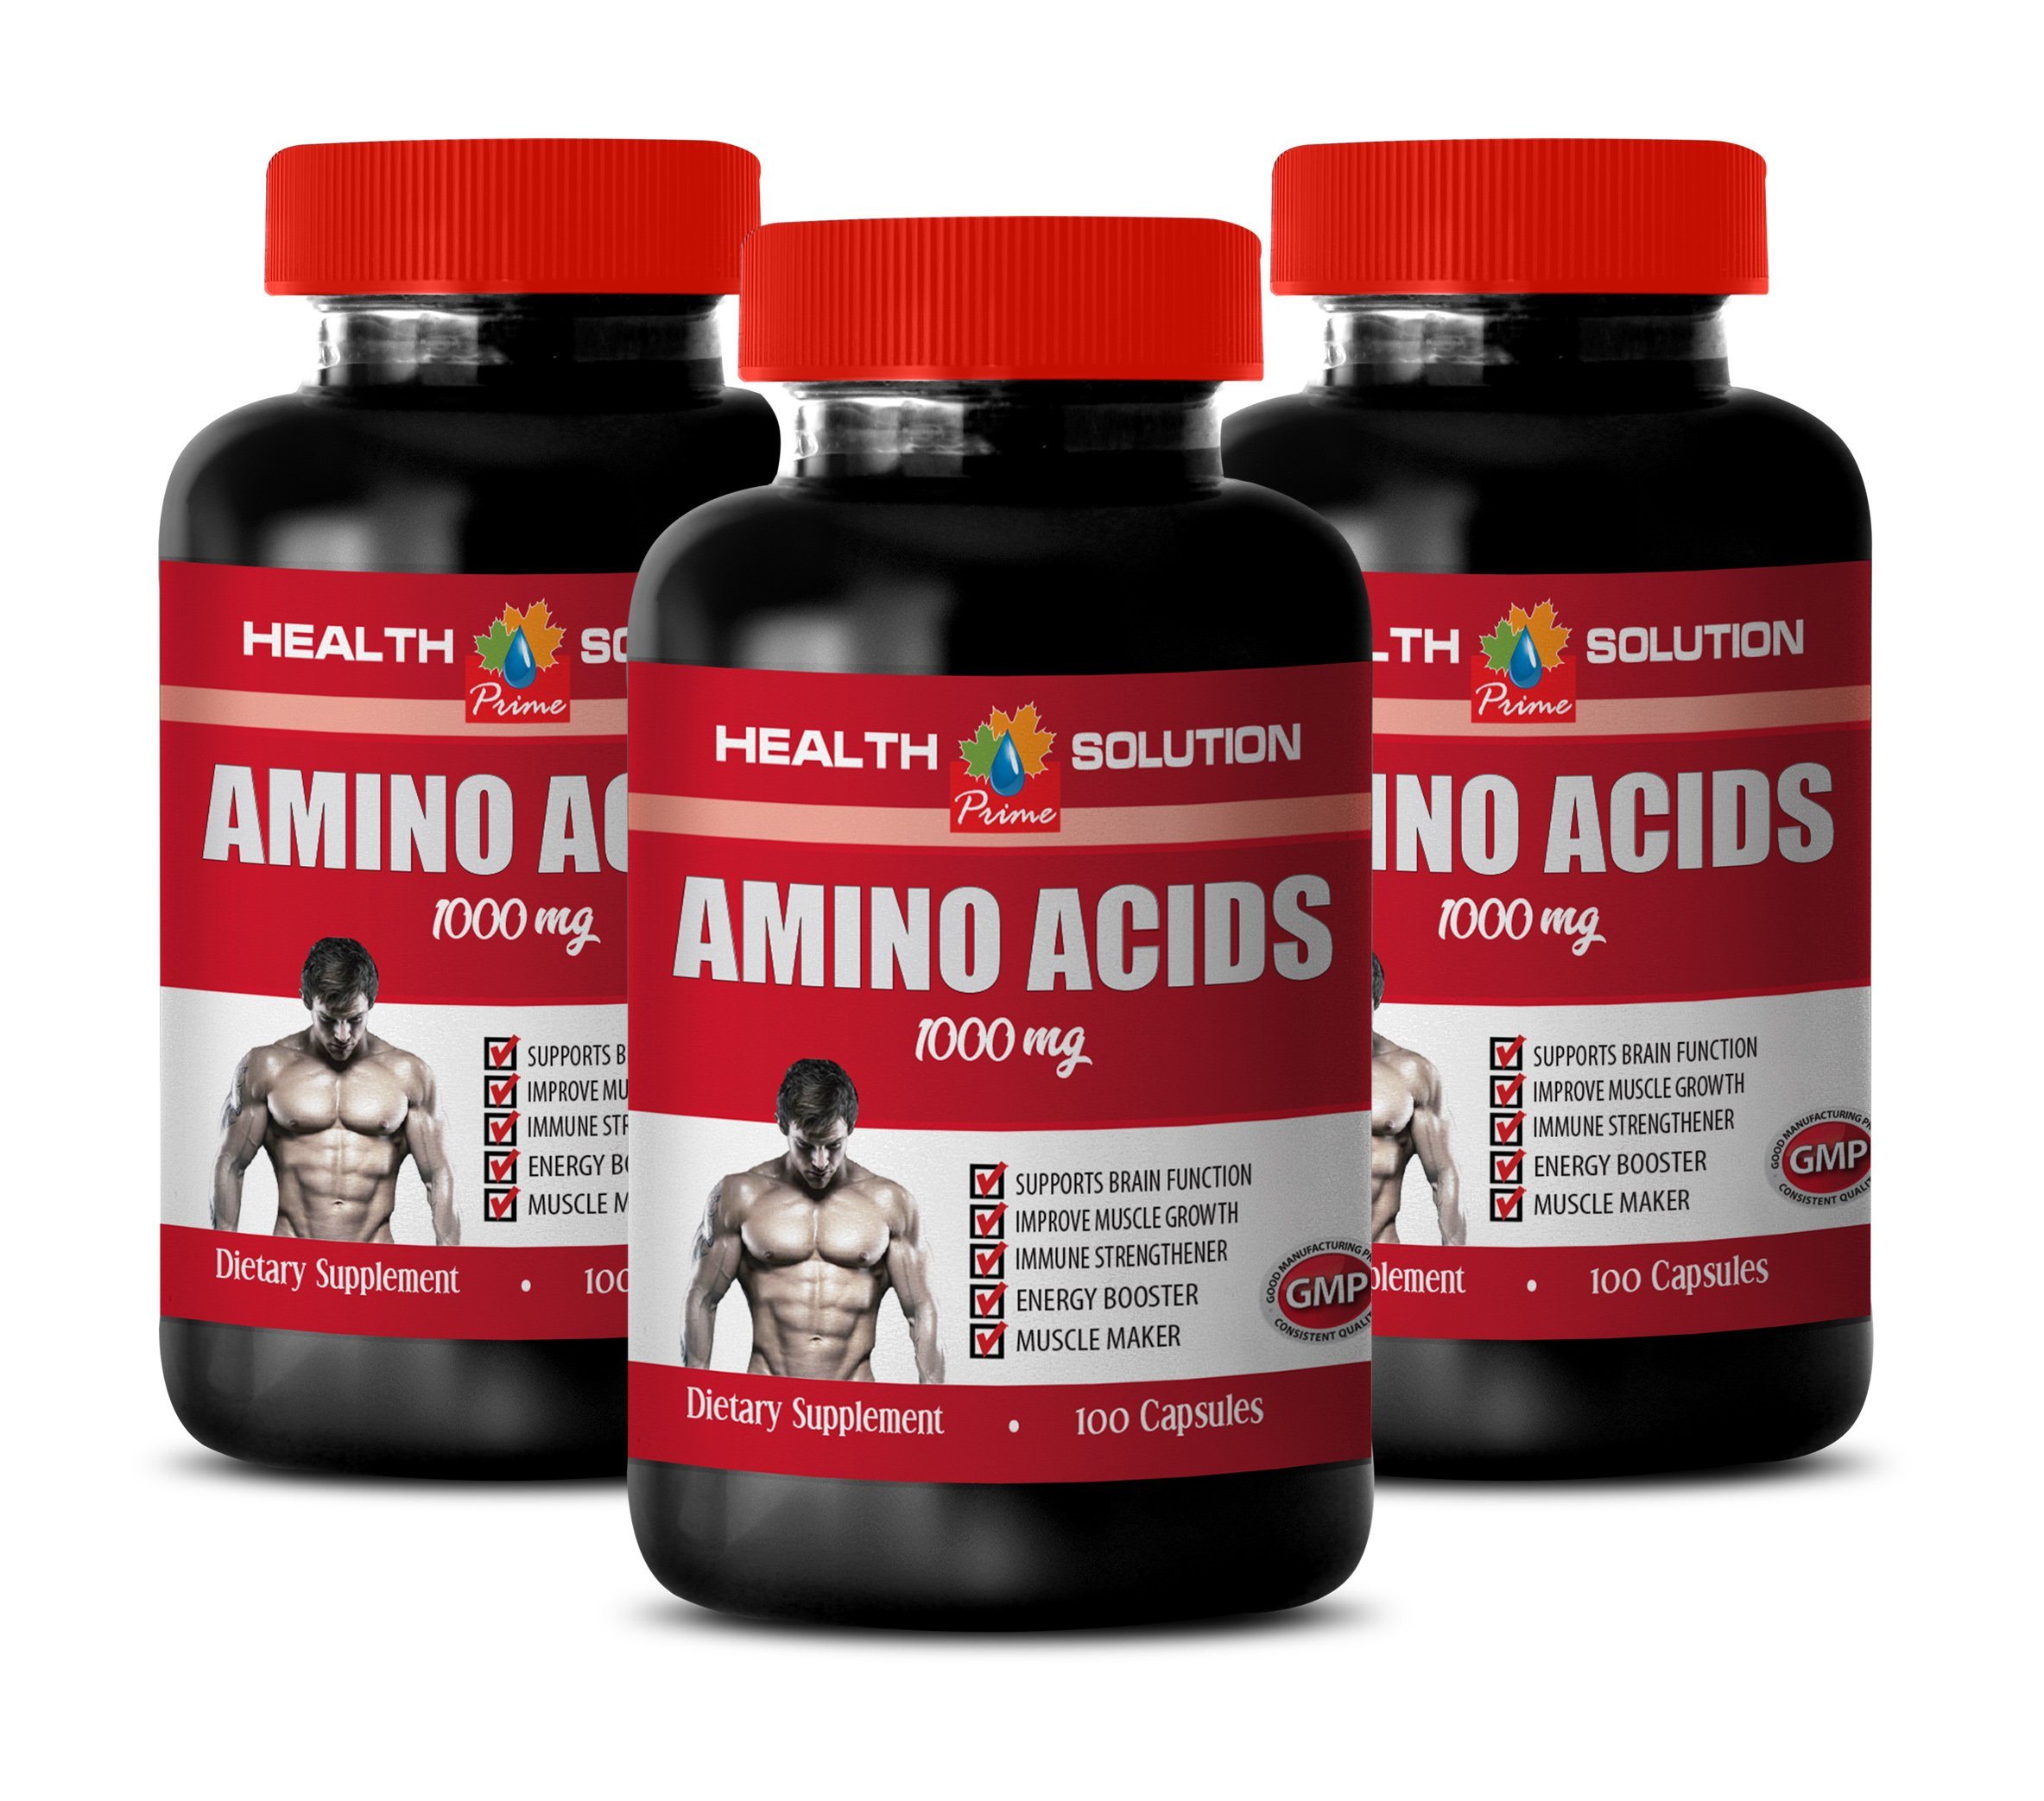 Muscle Builder Supplements for Men - Amino Acids 1000 mg - l-theanine Pills - 3 Bottles 300 Capsules